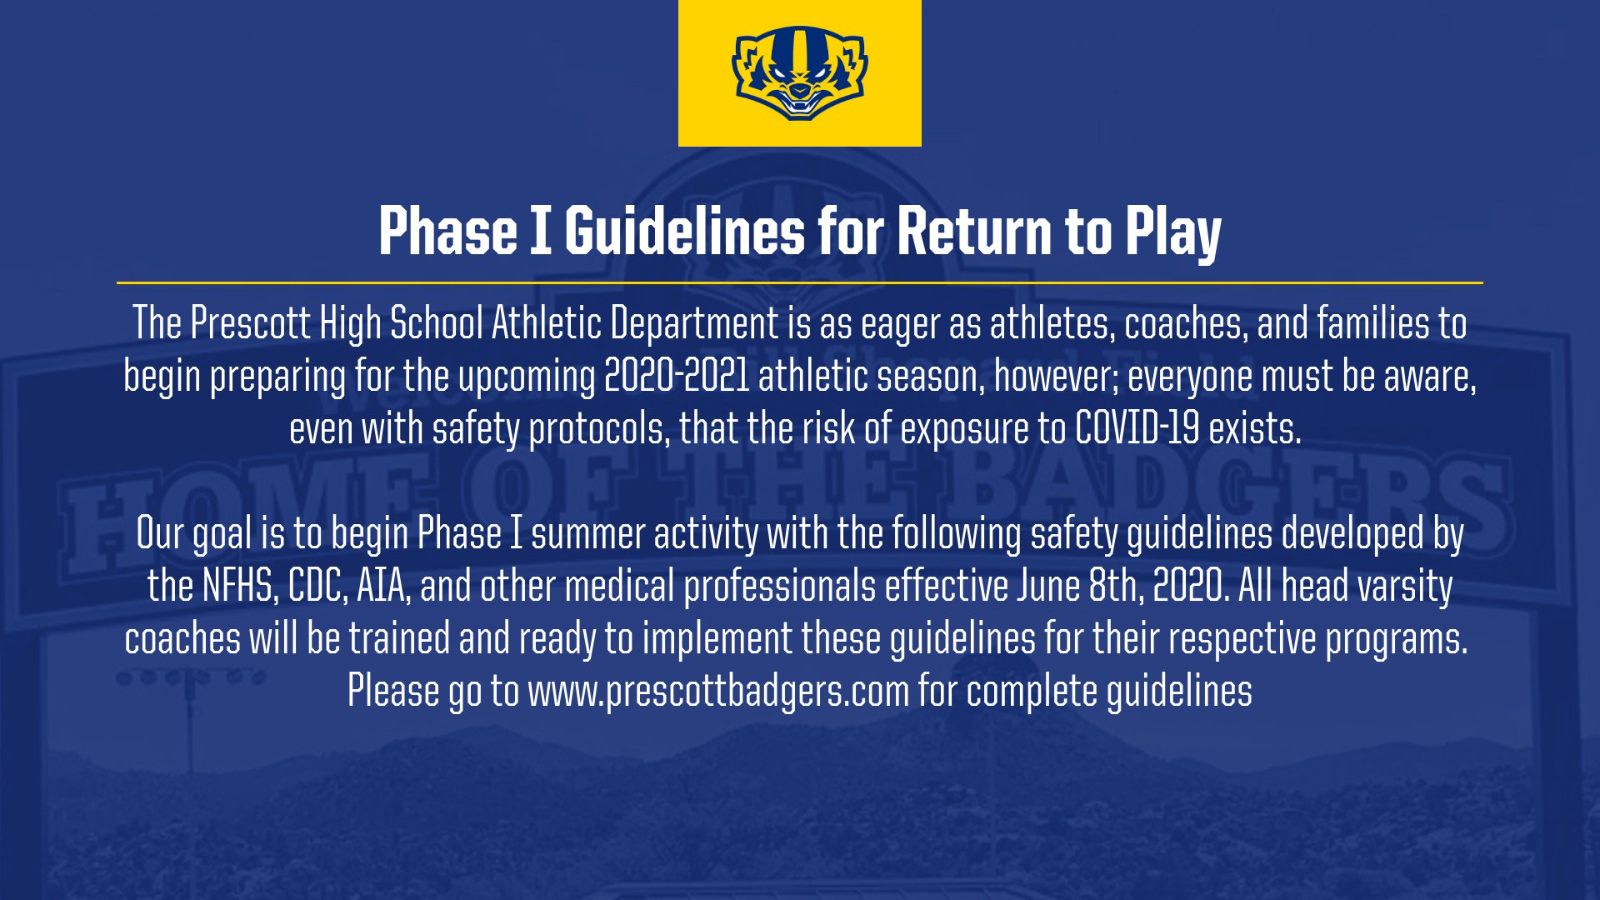 Phase I Athletics Guidelines for Return to Play (as approved by the AIA)